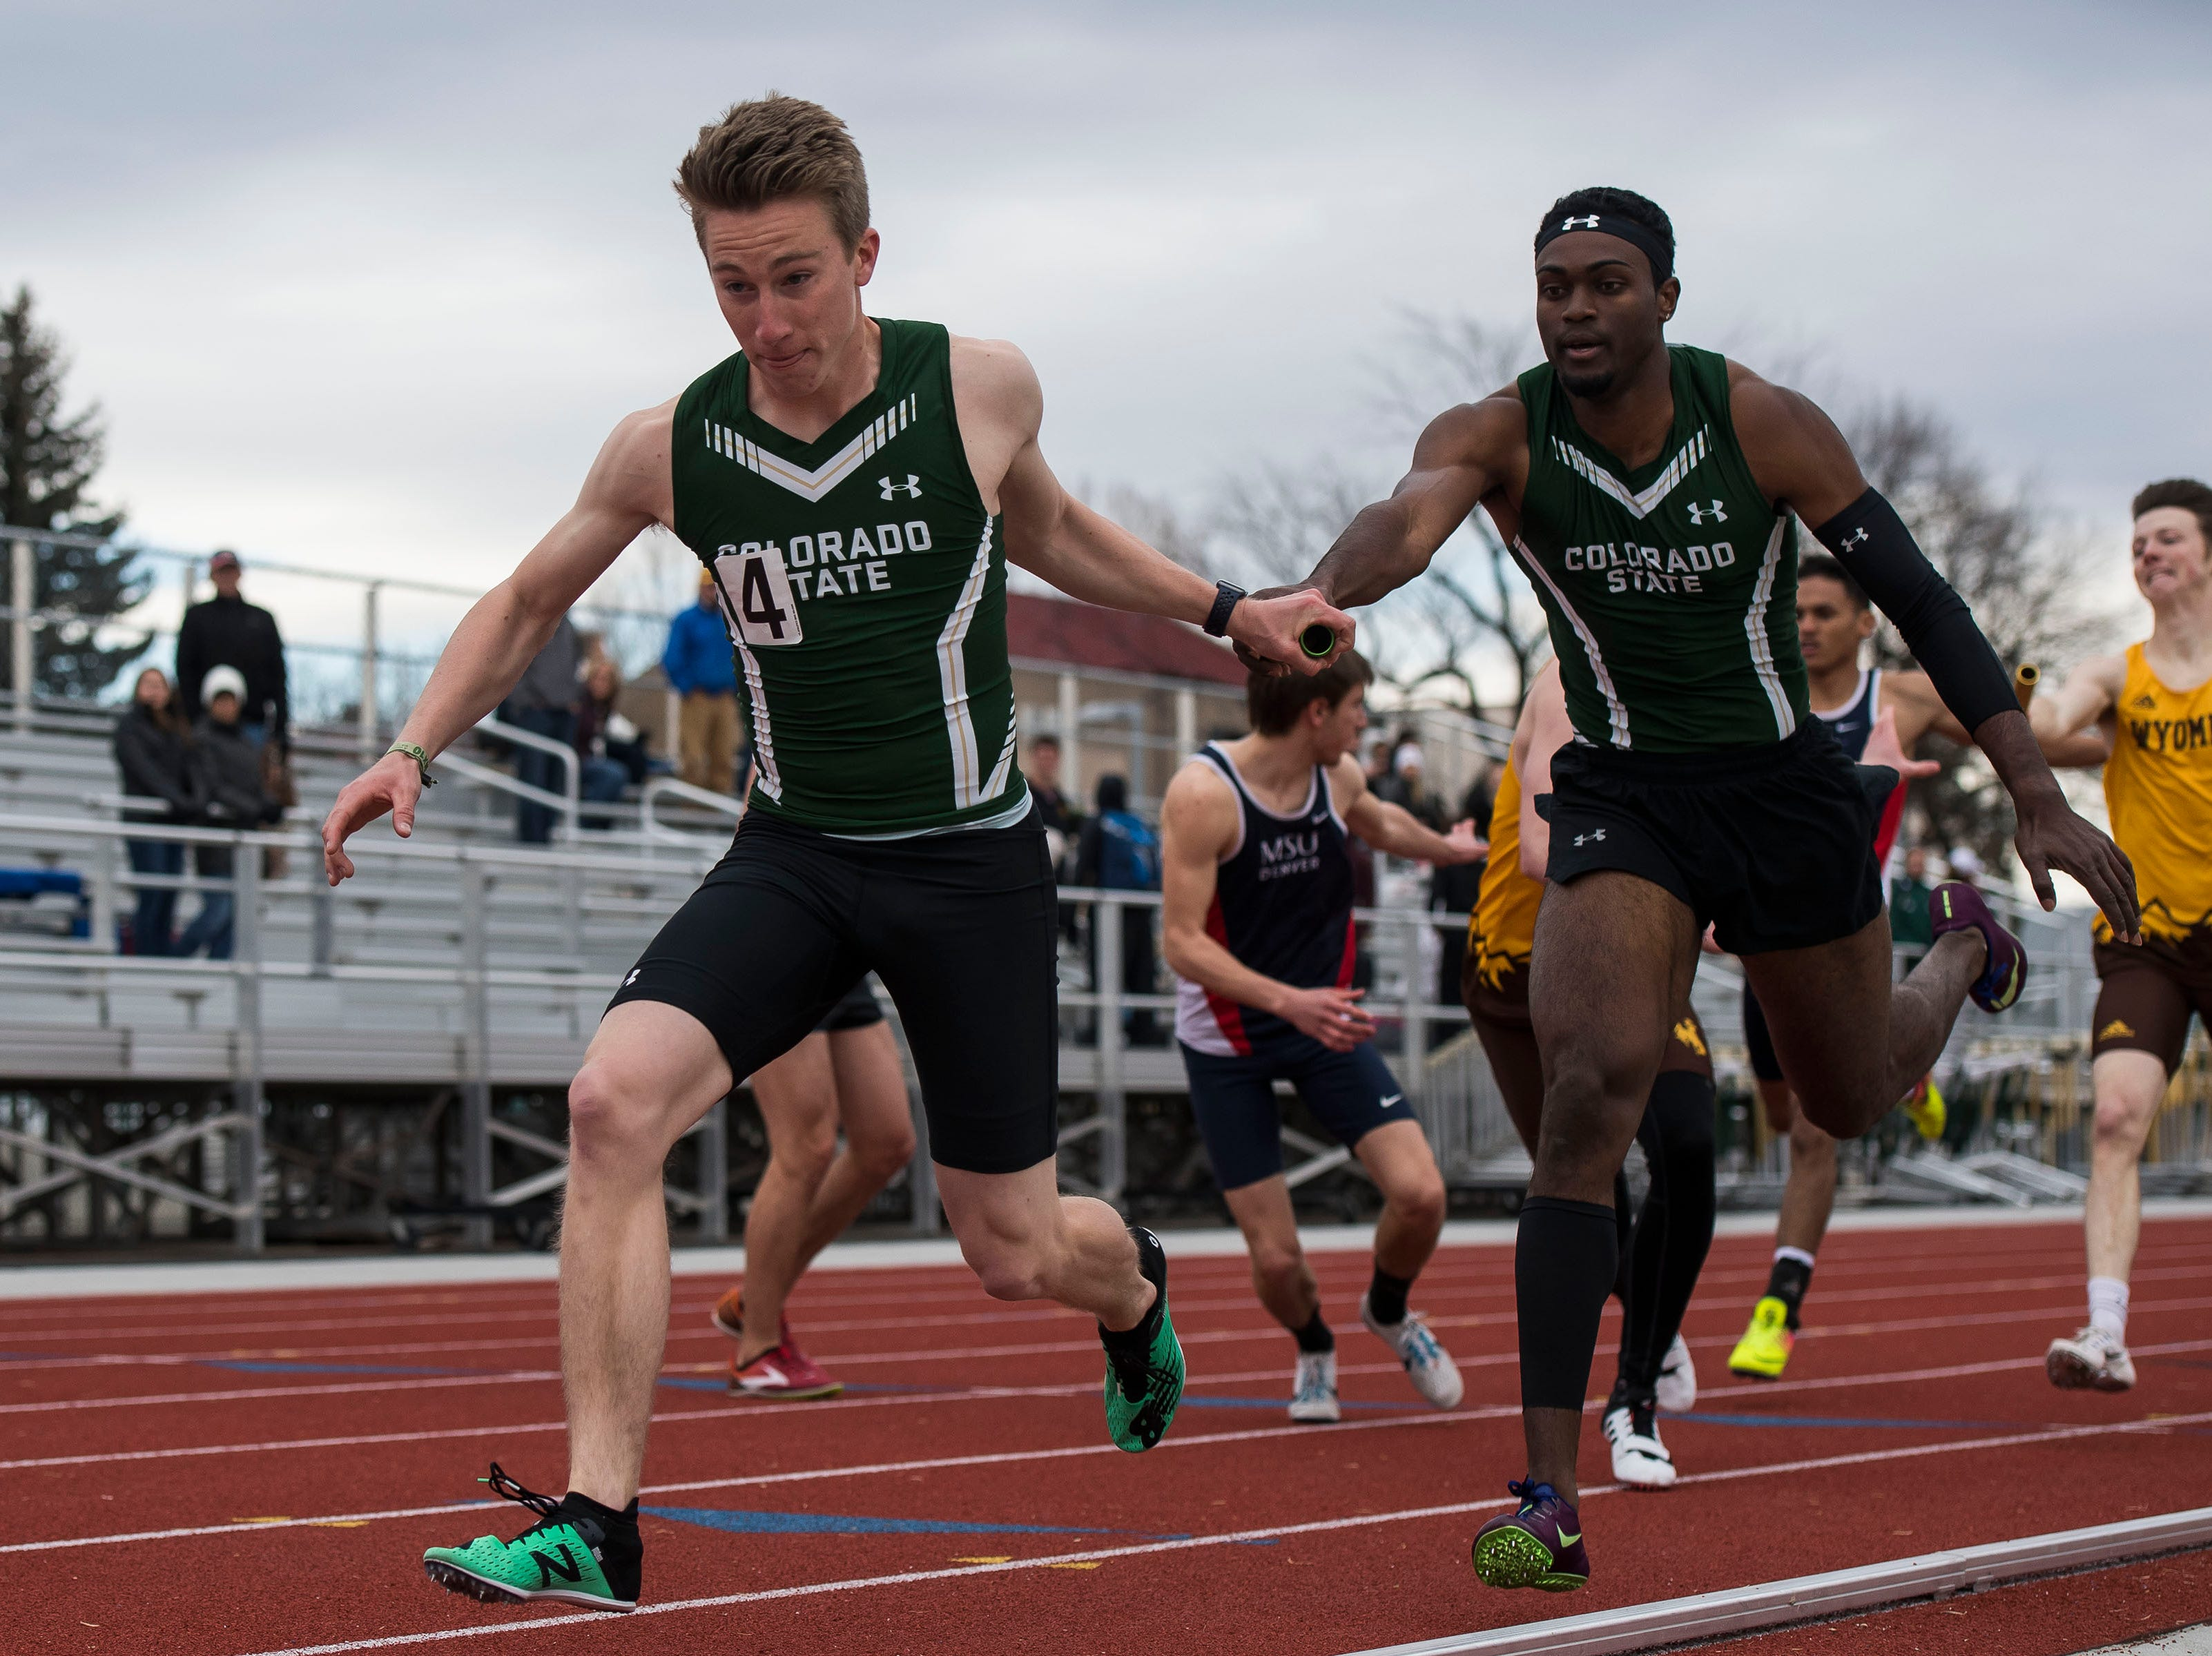 Colorado State University junior Nick Fondiller takes the handoff from Kamal-Craig Golaube during the mens 4x400-meter relay on Saturday, March 23, 2019, at the Jack Christiansen Memorial Track in Fort Collins, Colo.